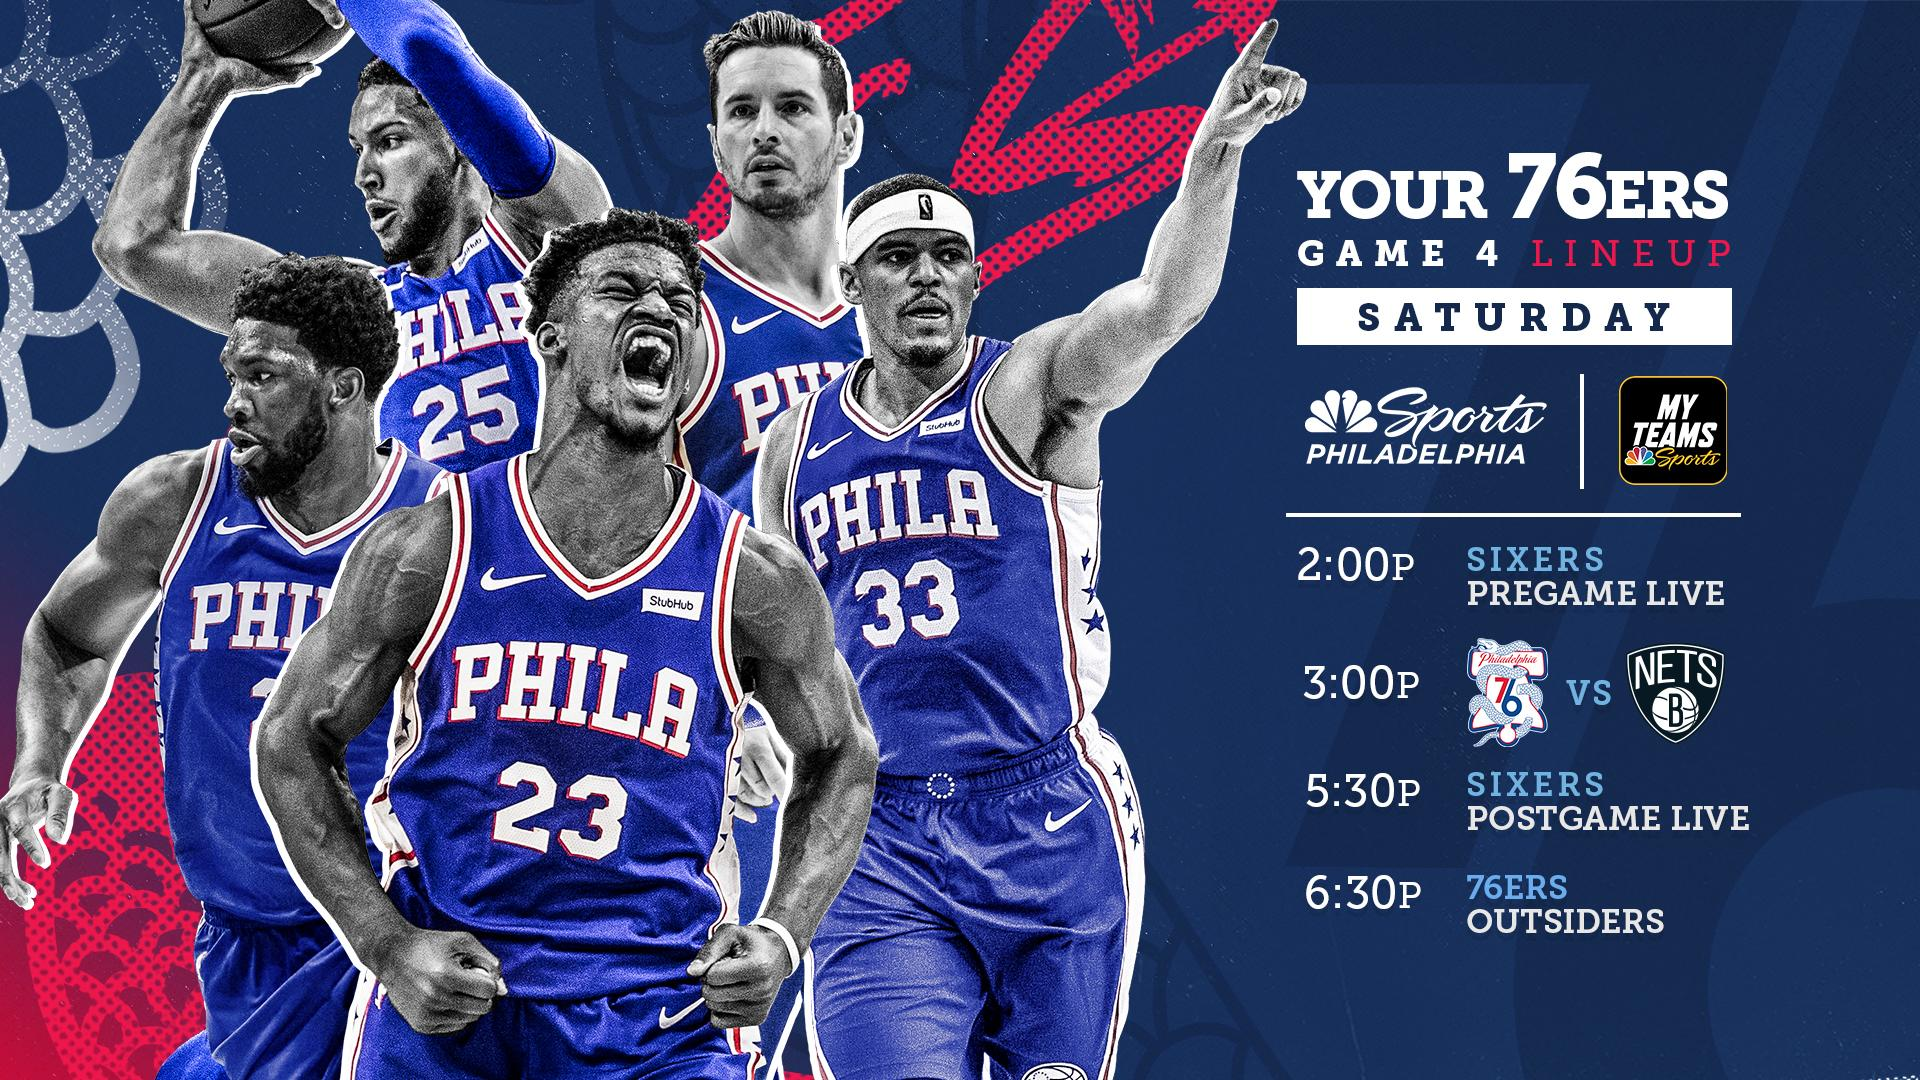 How To Watch Sixers Vs Nets Game 4 Start Time TV And